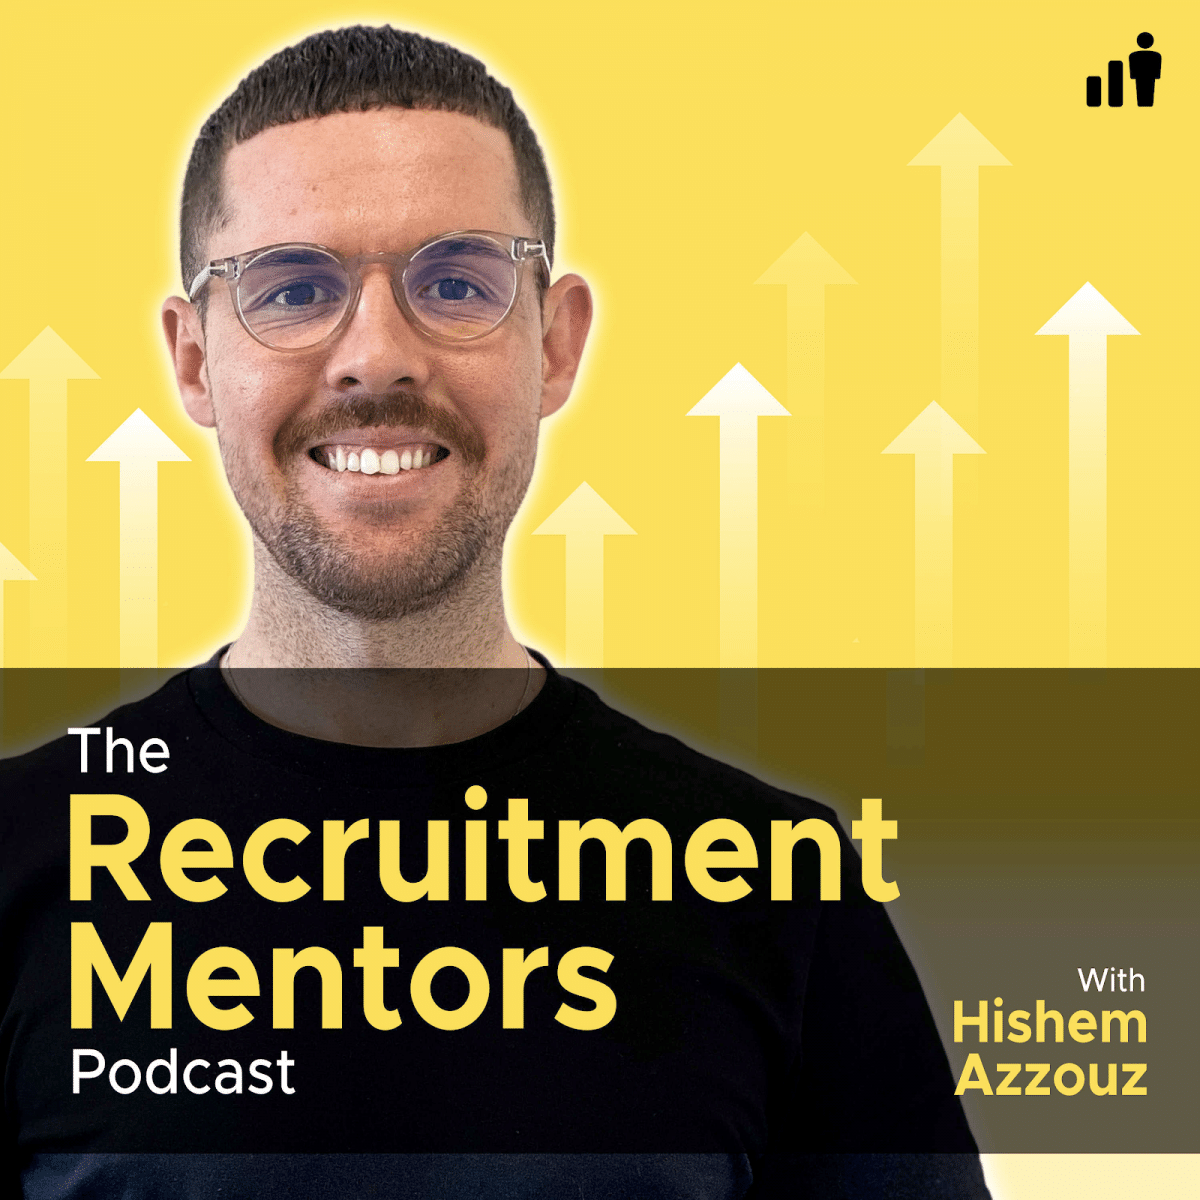 Hishem Azzouz from The Recruitment Mentors Podcast